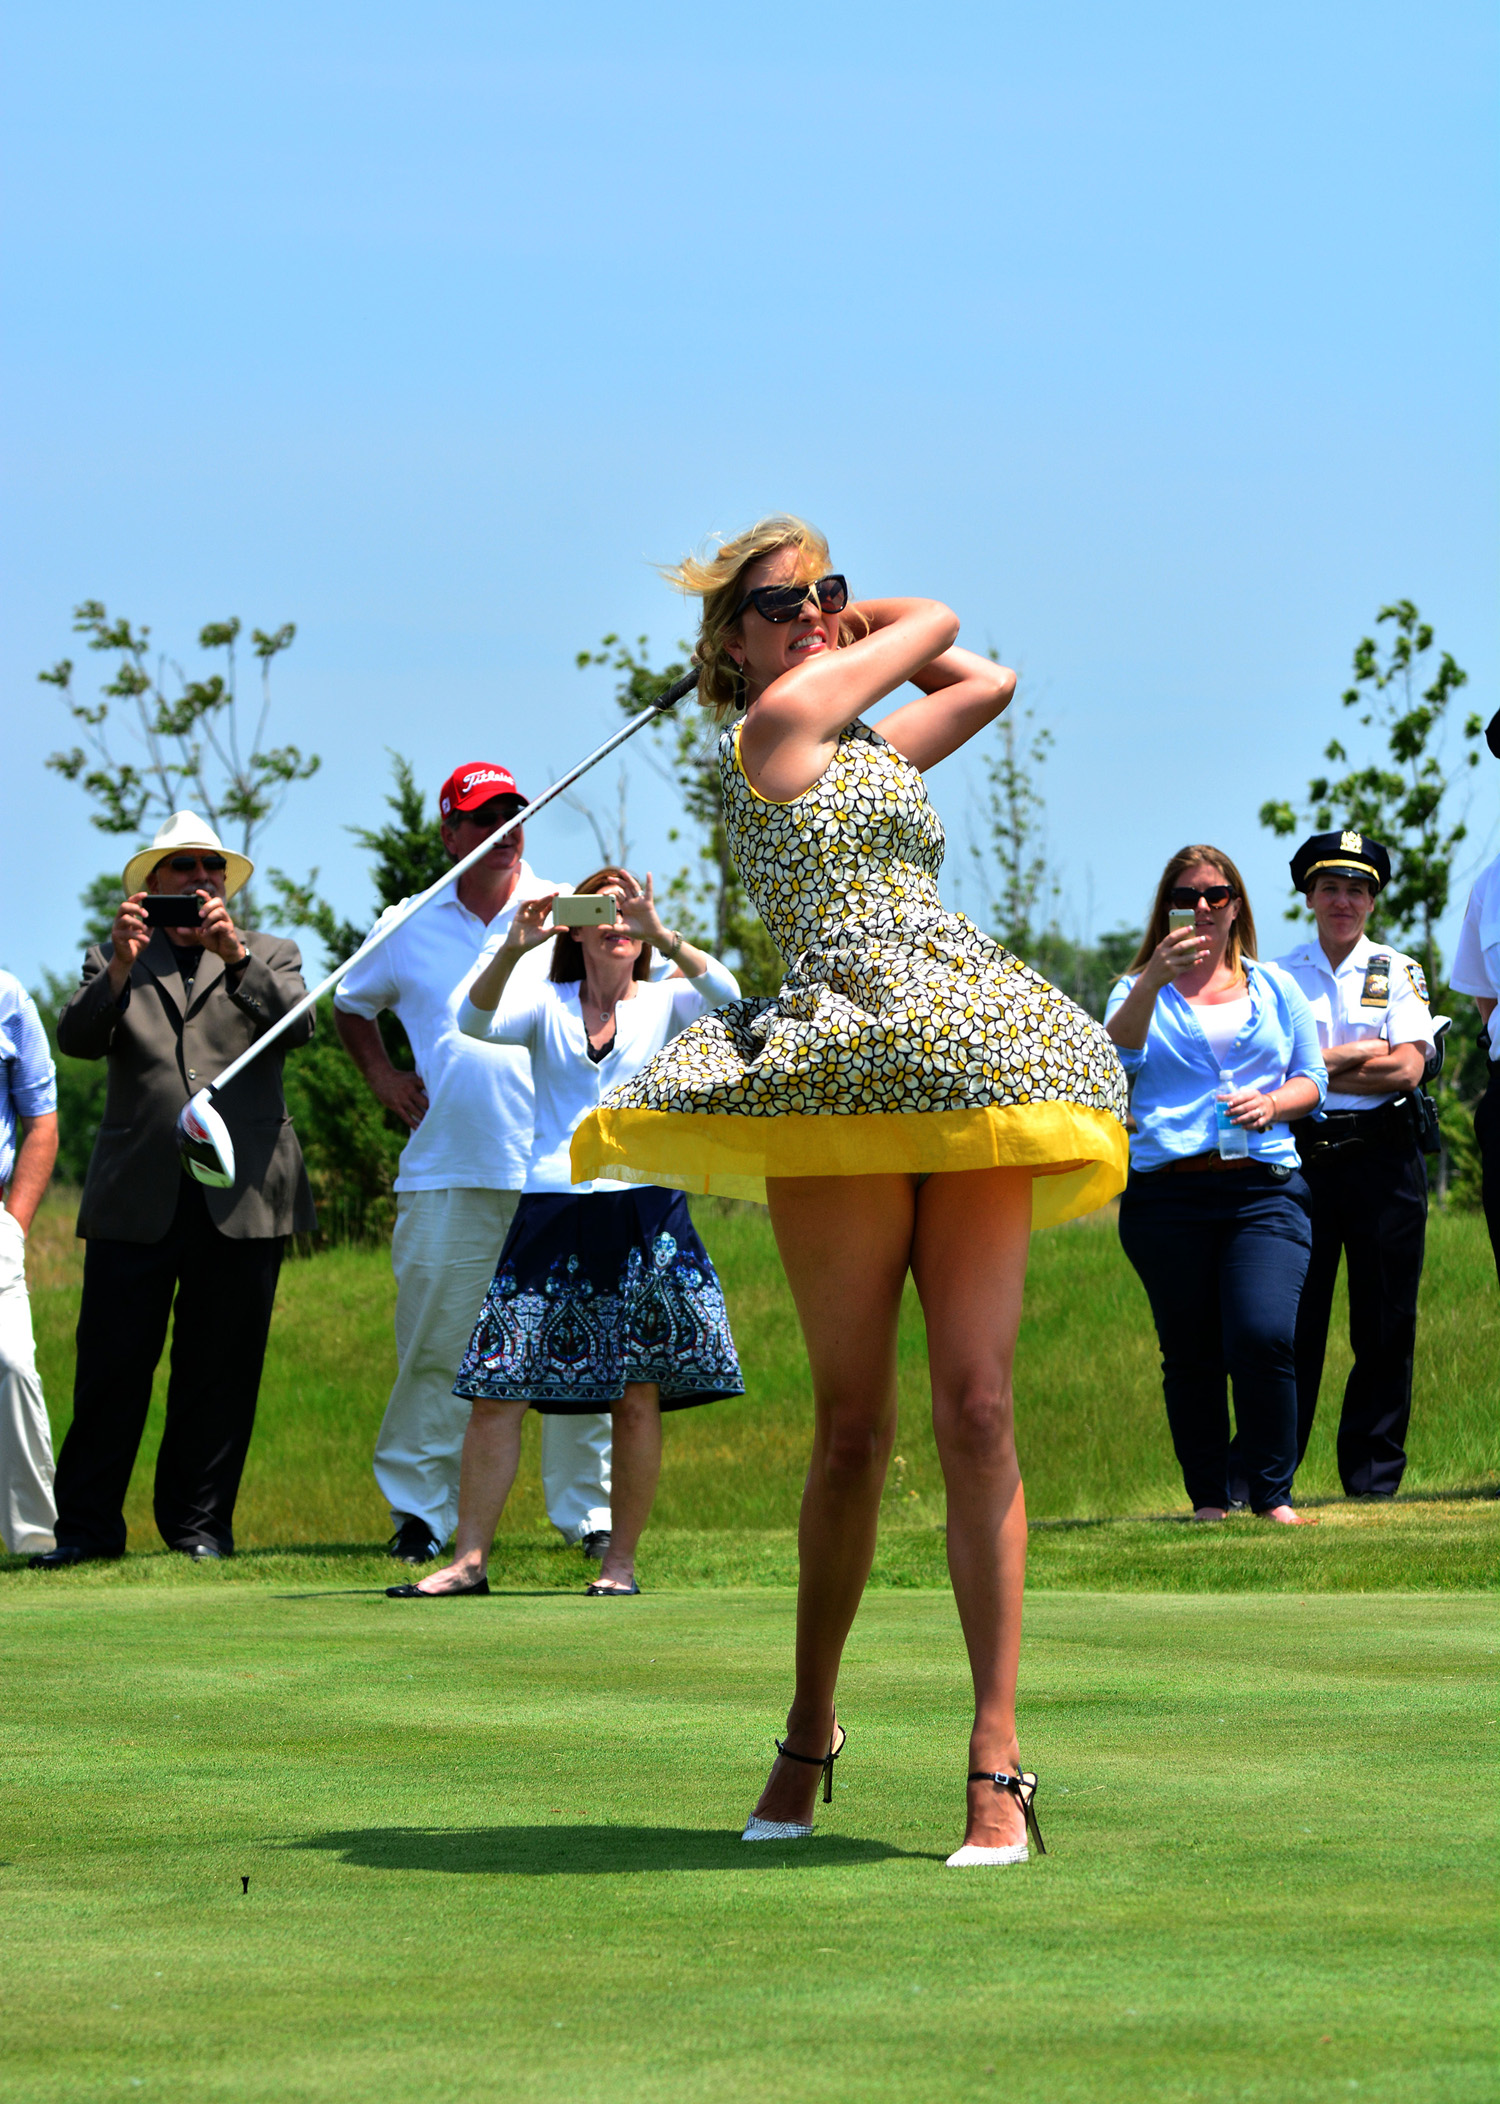 Ivanka Trump on the 18th hole at the opening of Trump Golf Links in Ferry Park after speeches by her daddy and links designer Jack Nicklaus.  Bronx, NY May 26, 2015.